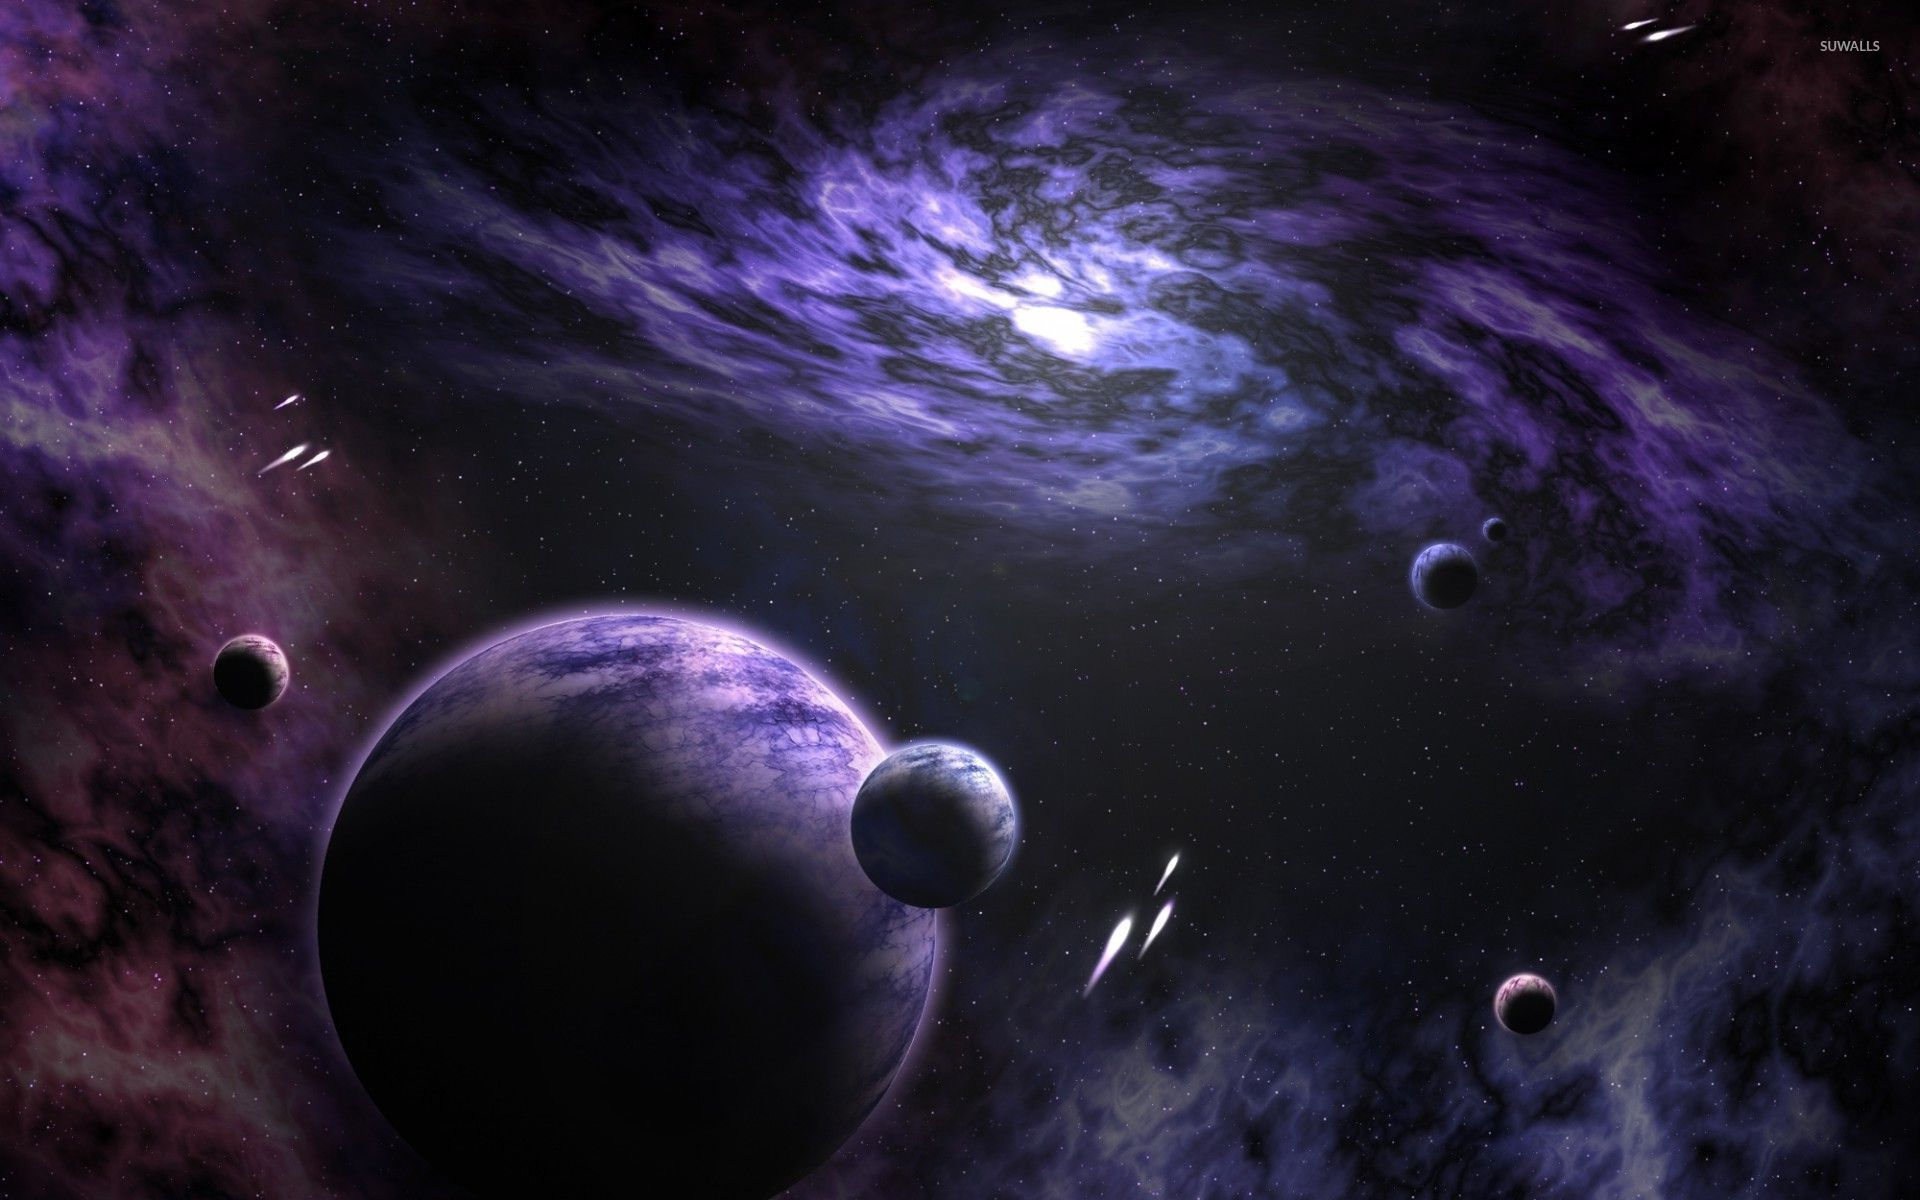 planets-in-the-purple-universe-52961-1920x1200